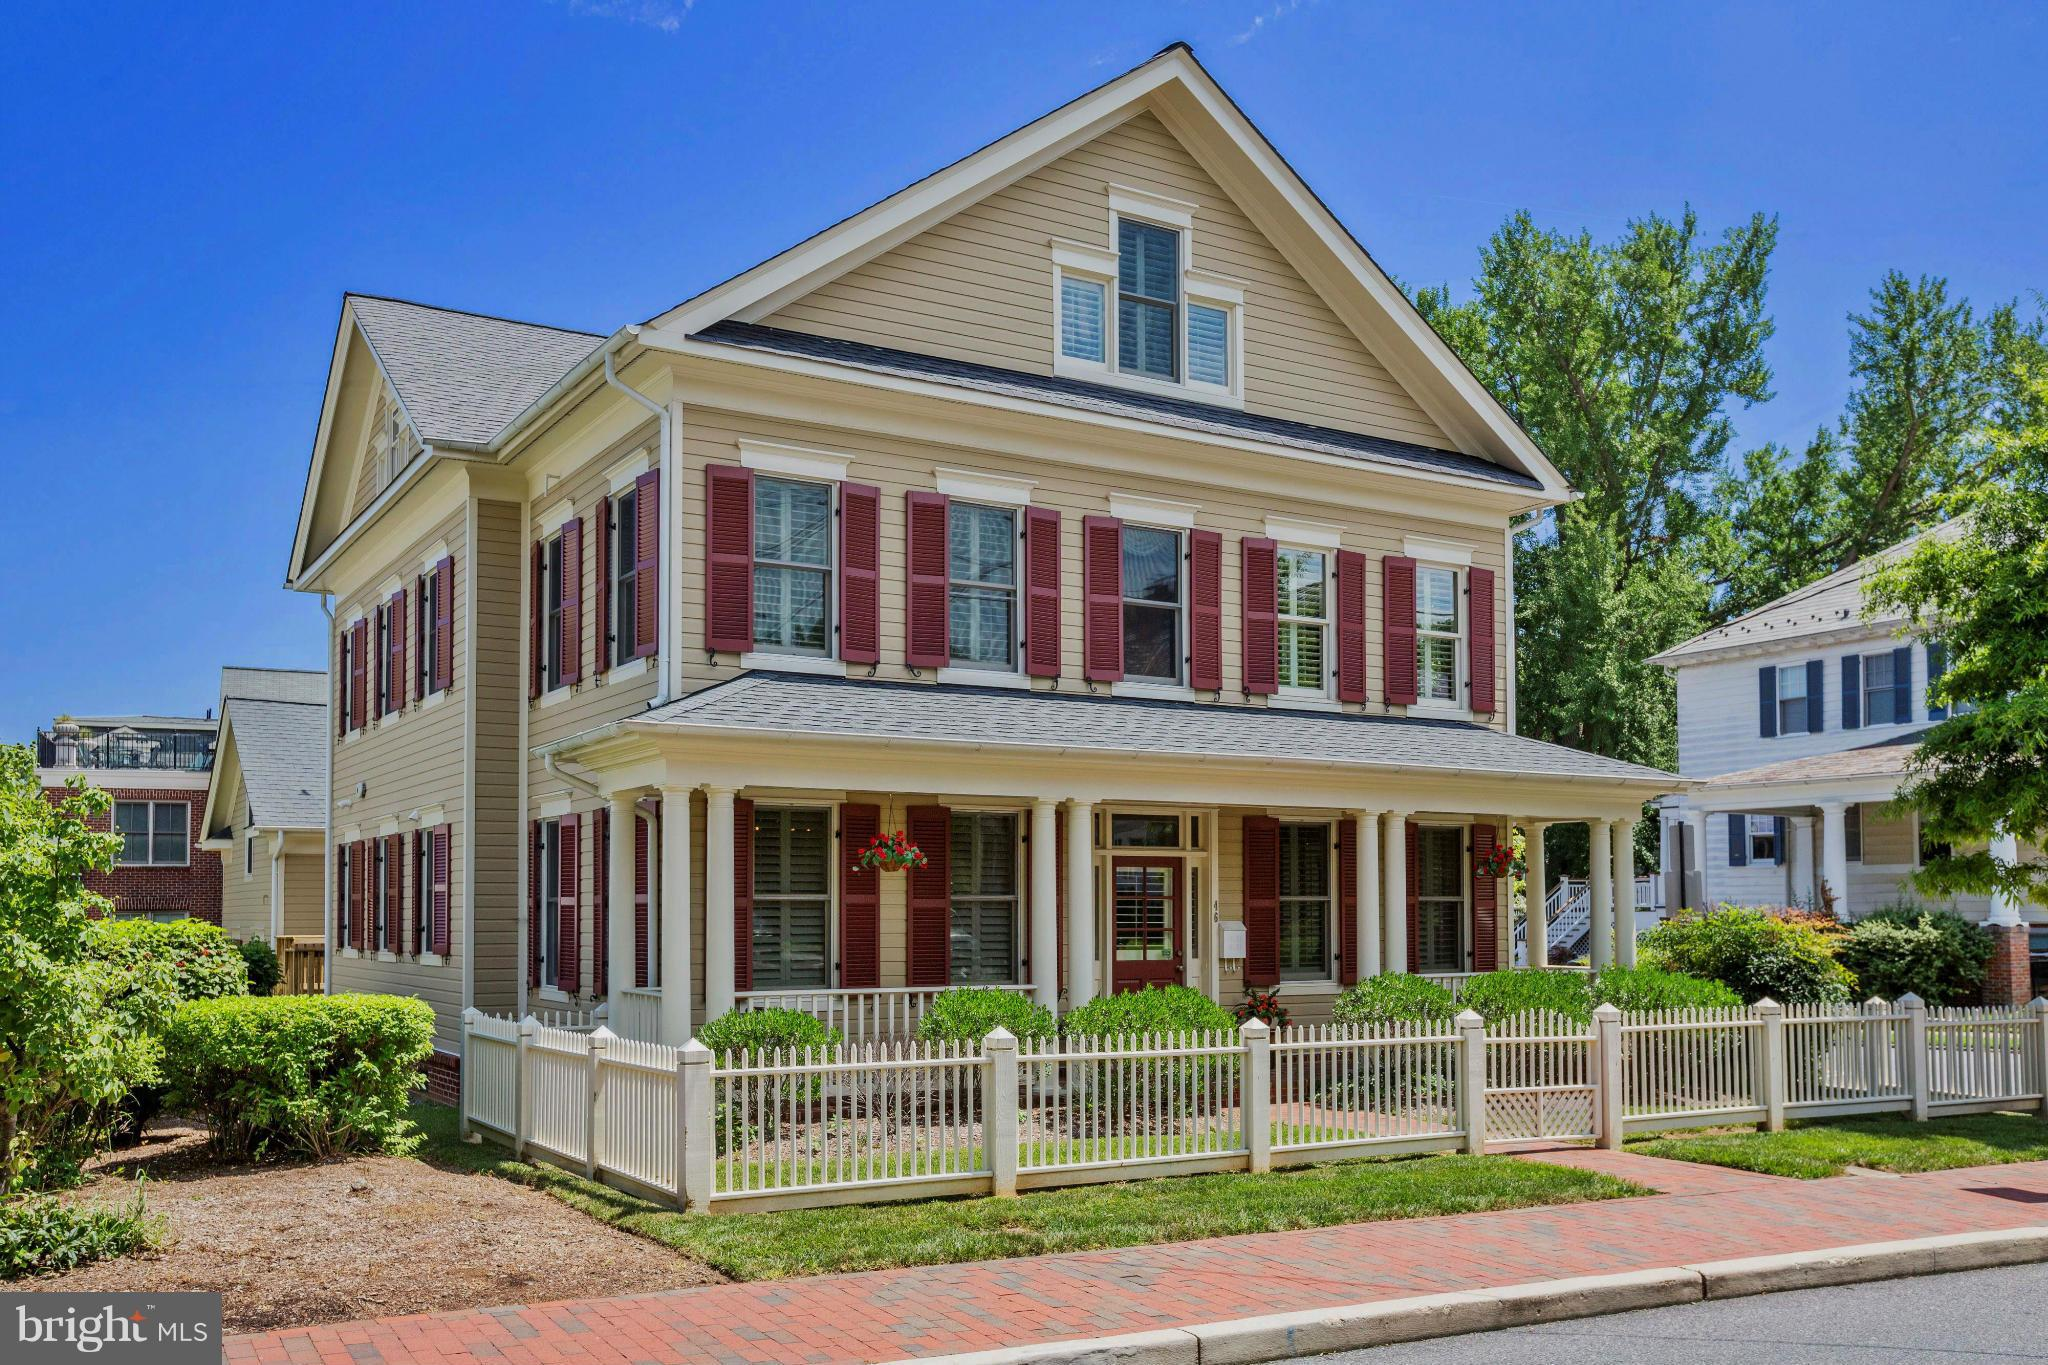 46 FRANKLIN STREET, ANNAPOLIS, MD 21401